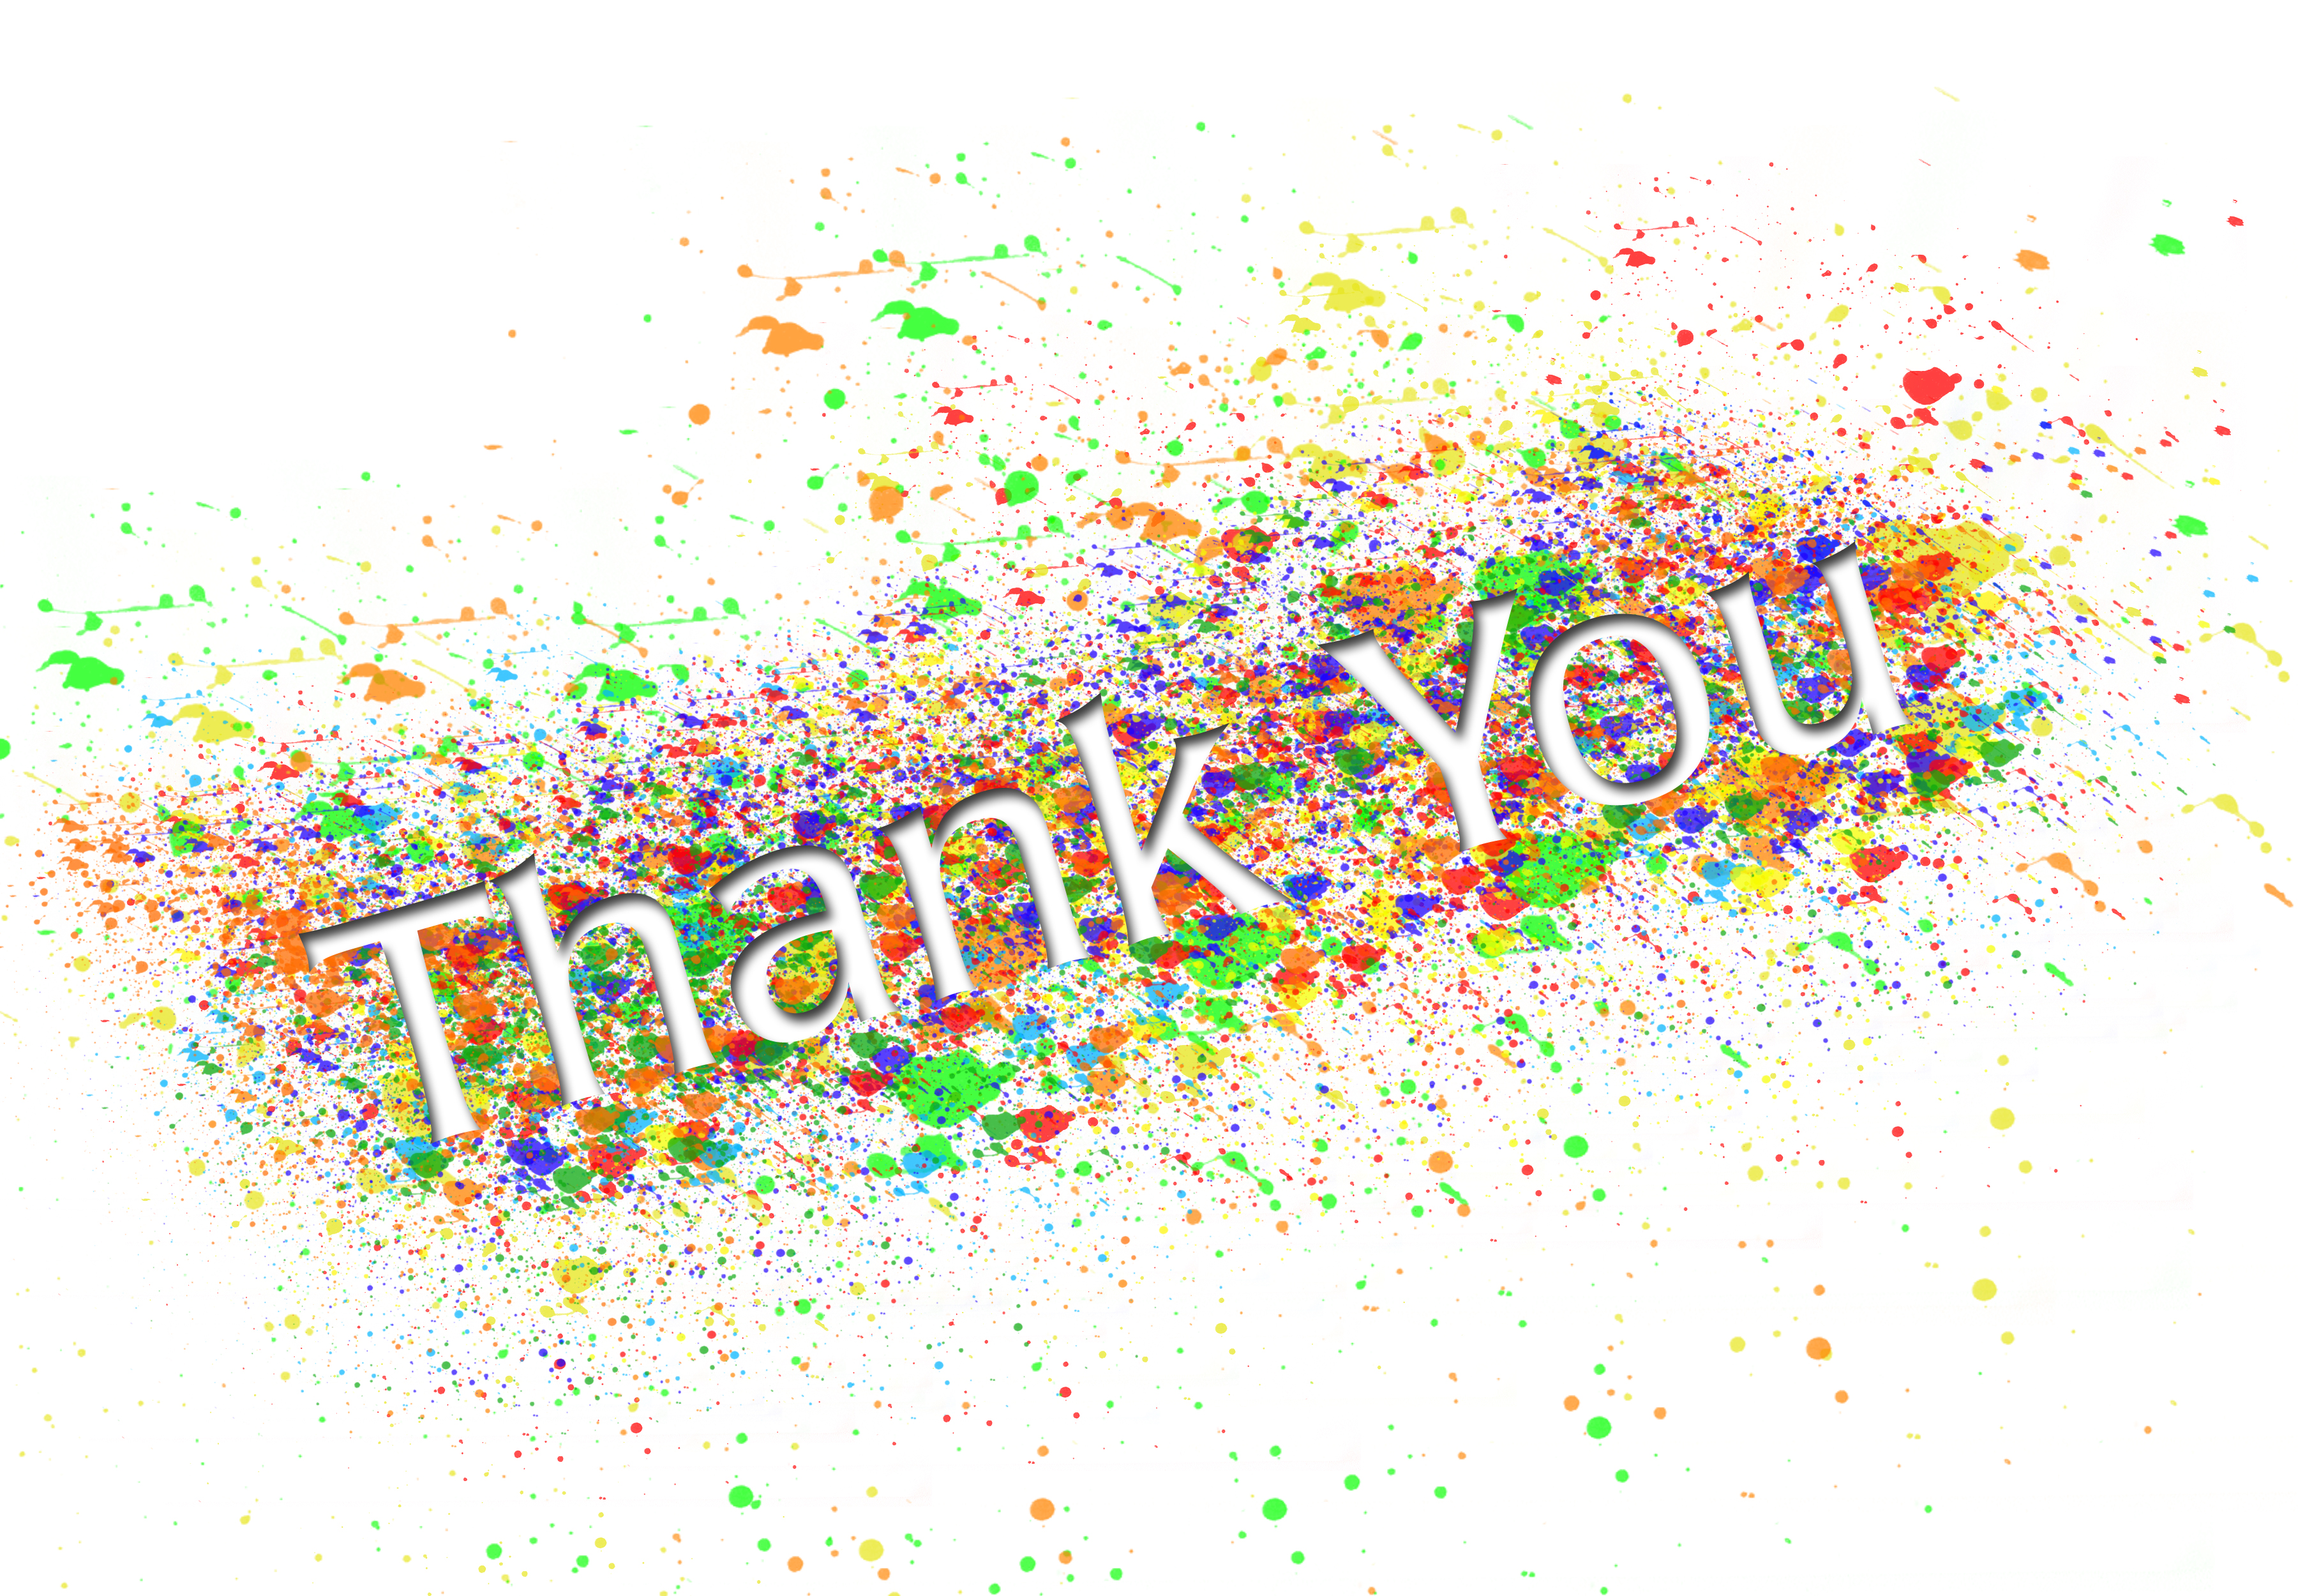 professional thank you clipart clipart kid the art of saying thank you gary ray s blog